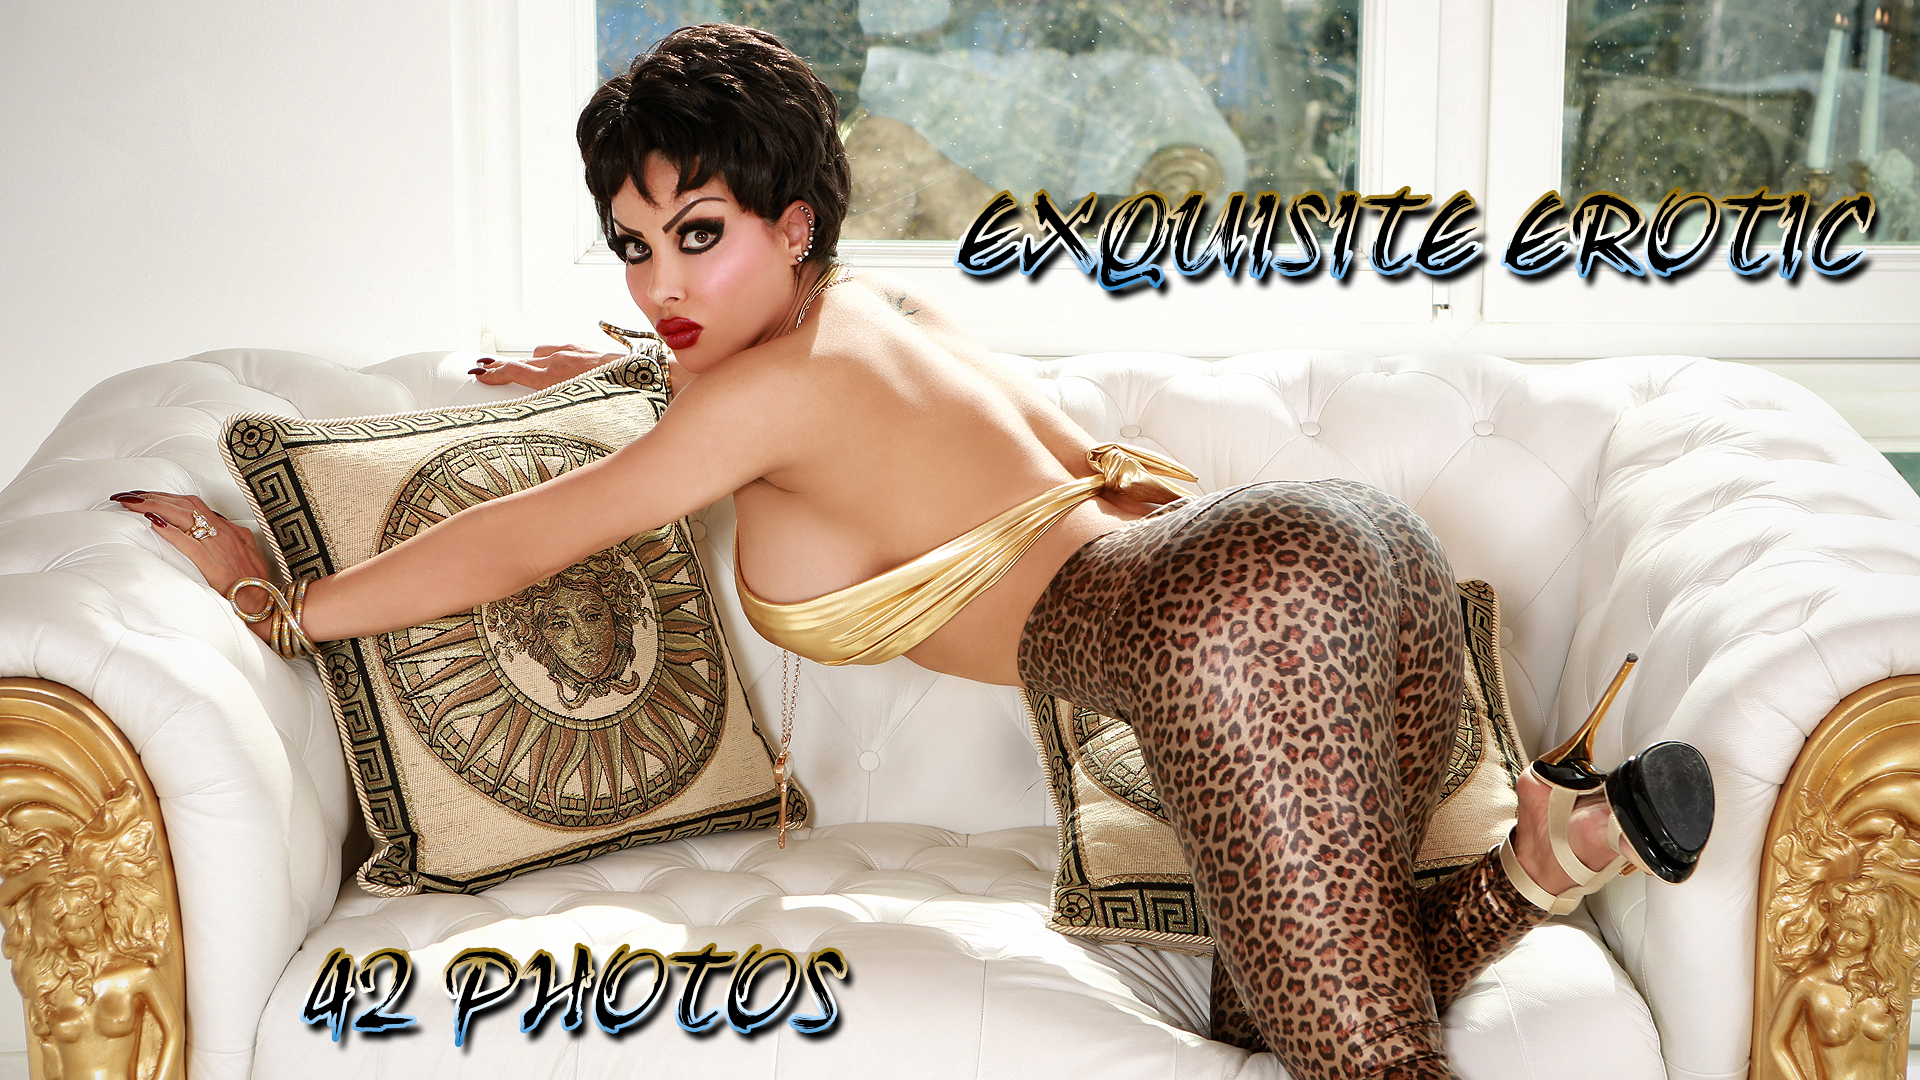 Exquisite Erotic